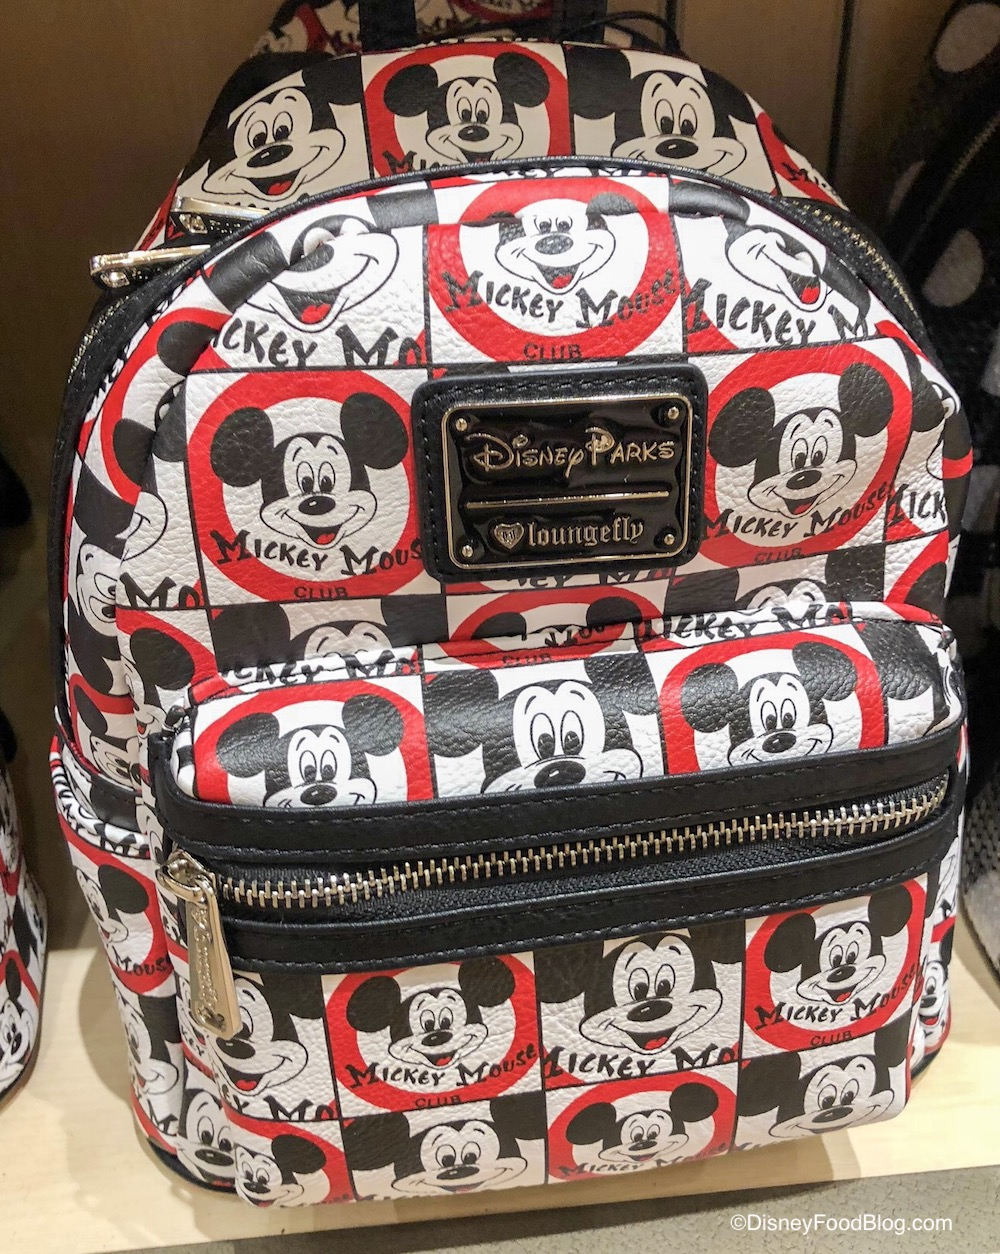 c375c3774cf8 FIRST LOOK: New Mickey Mouse Club Collection Arrives at World of ...